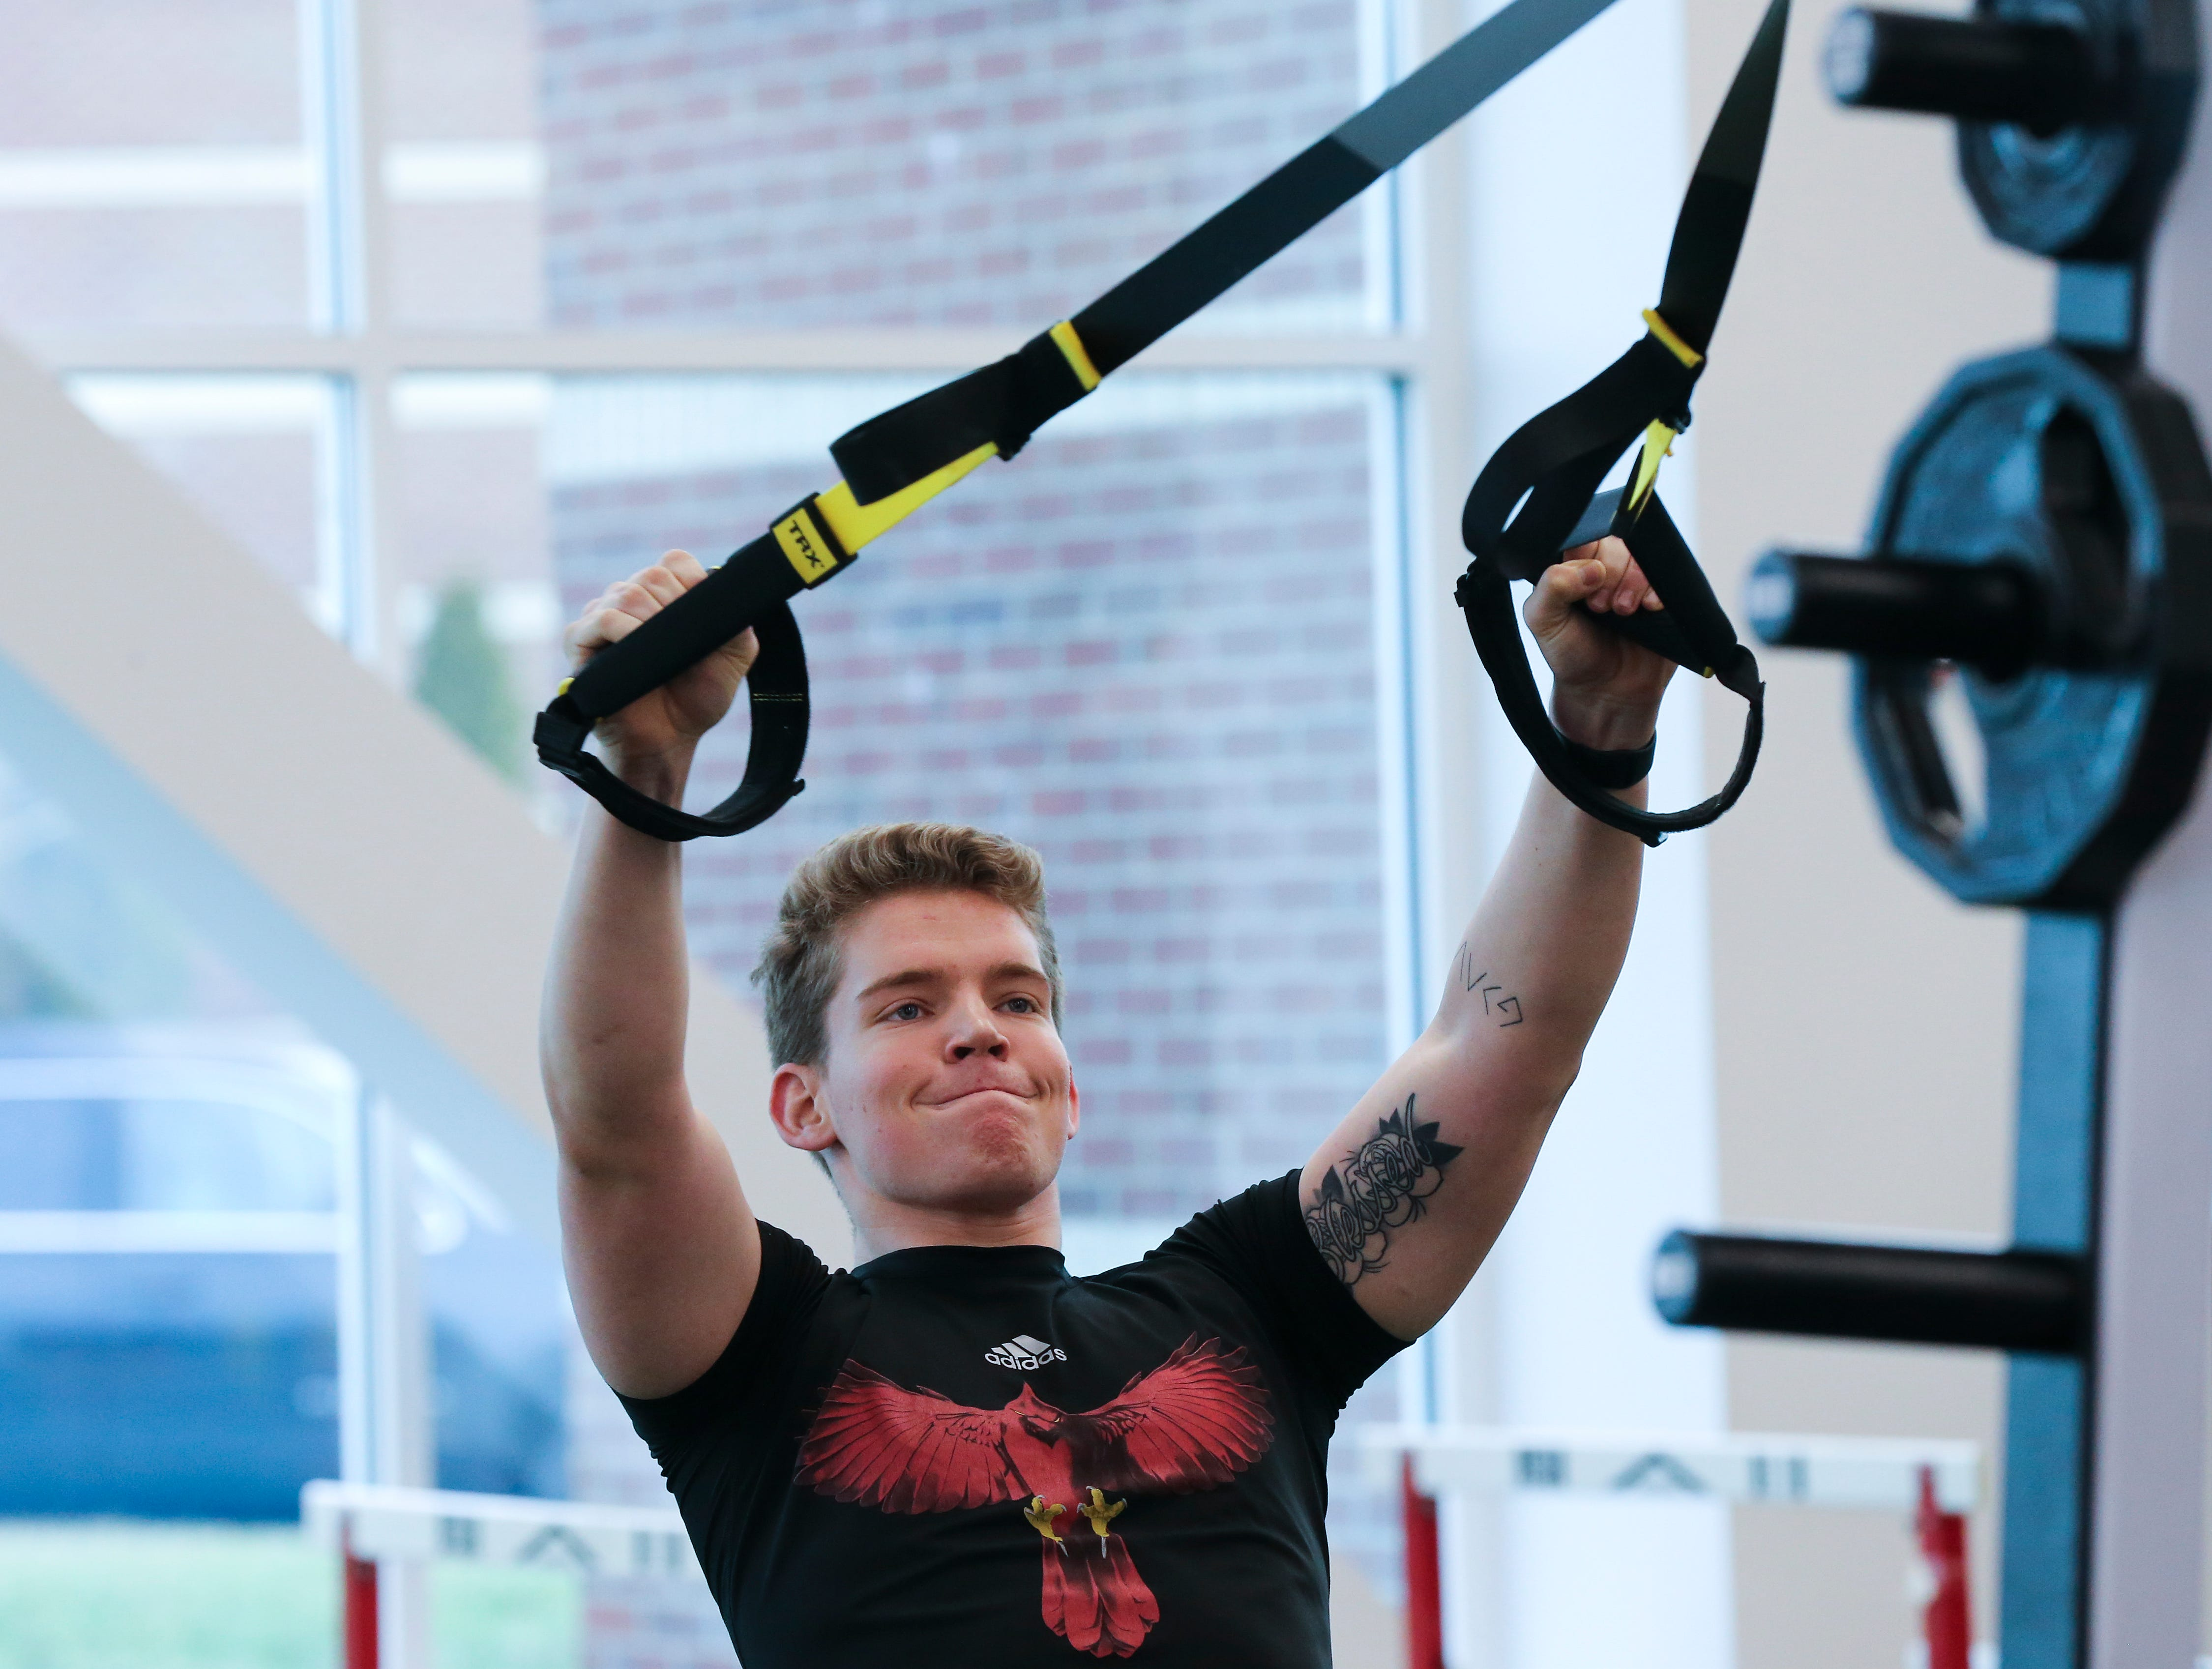 U of L long snapper Mitch Hall works out during strength and conditioning at the Schnellenberger Complex.